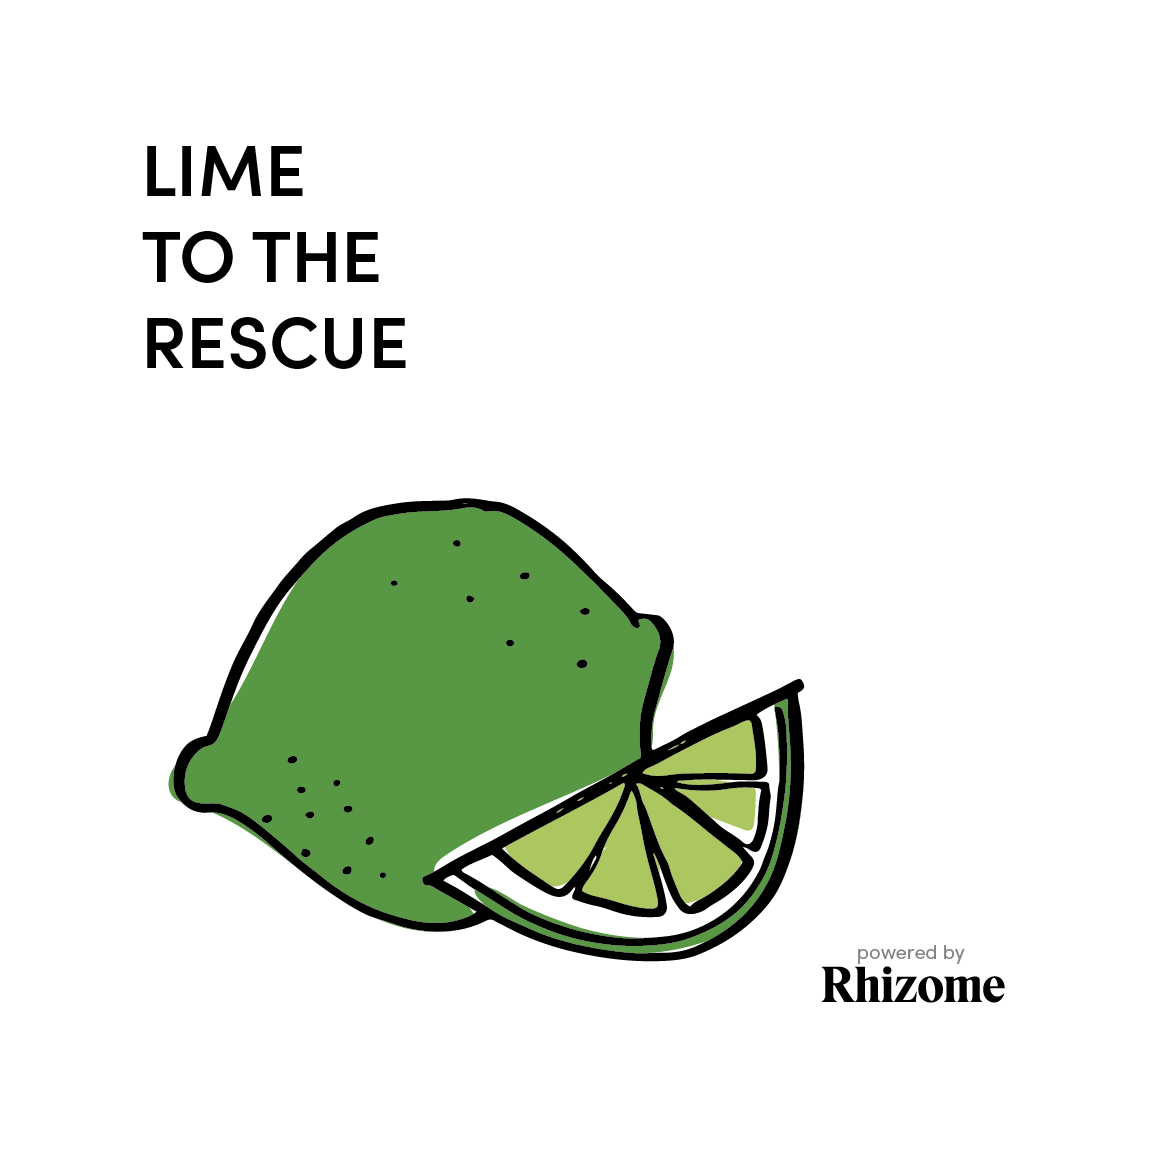 LIME TO THE RESCUE